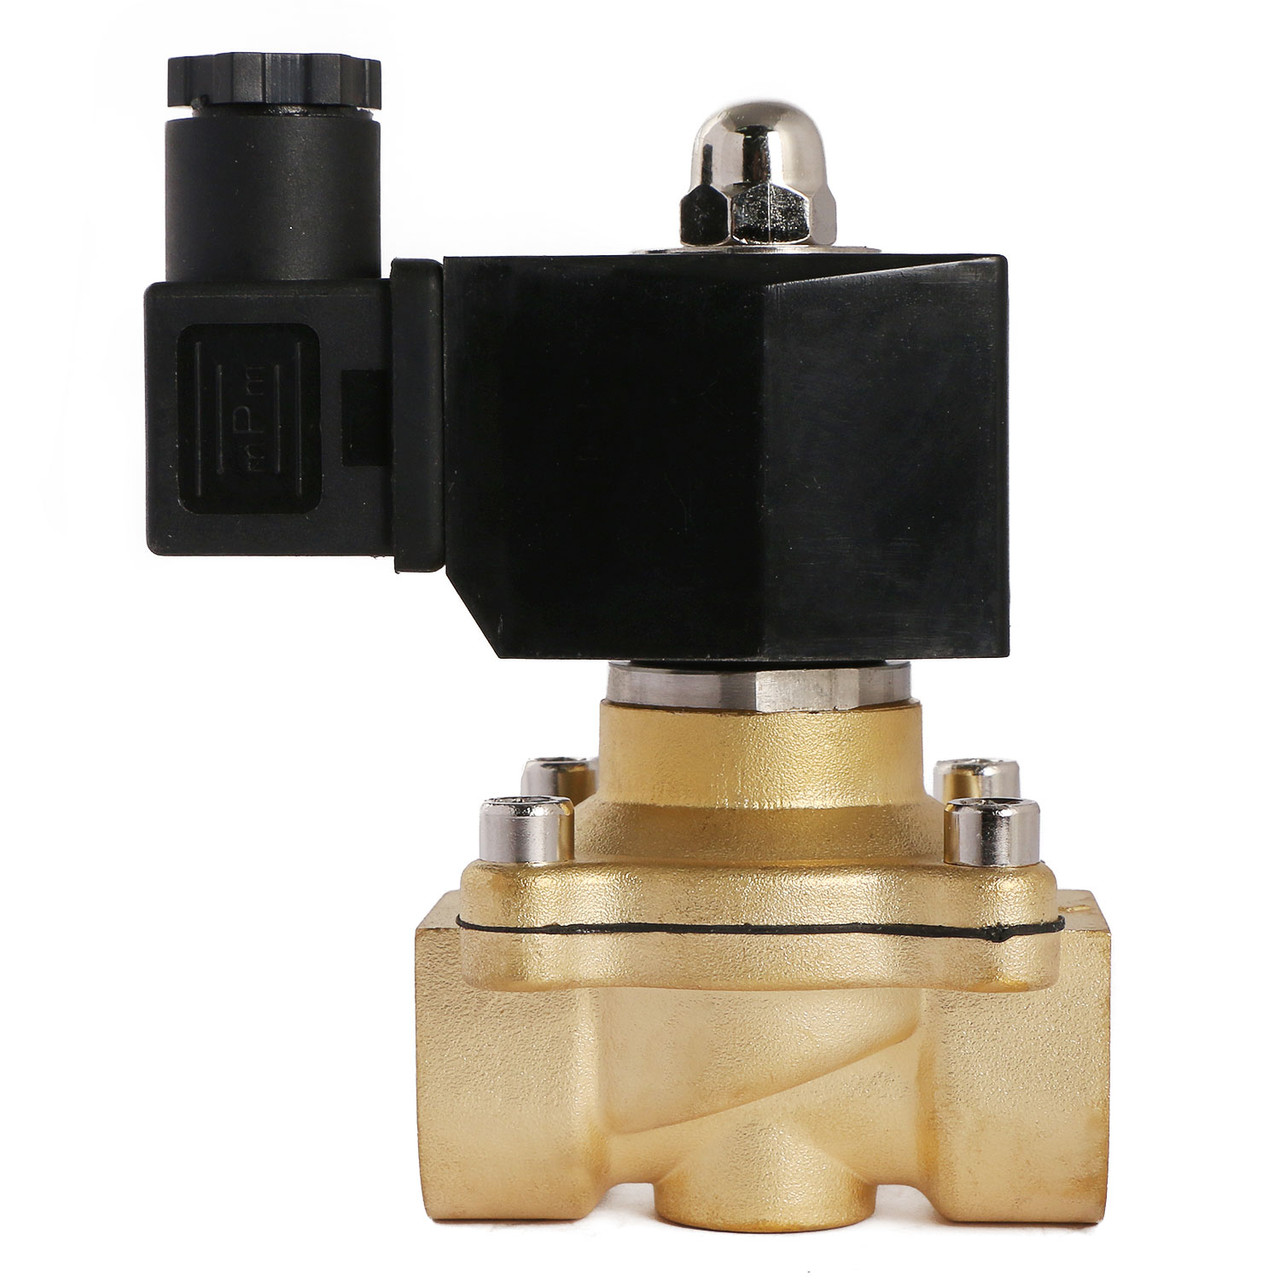 """U.S. Solid 3/4"""" Brass Electric Solenoid Valve 12V DC Normally Closed VITON Air Water Oil Fuel"""